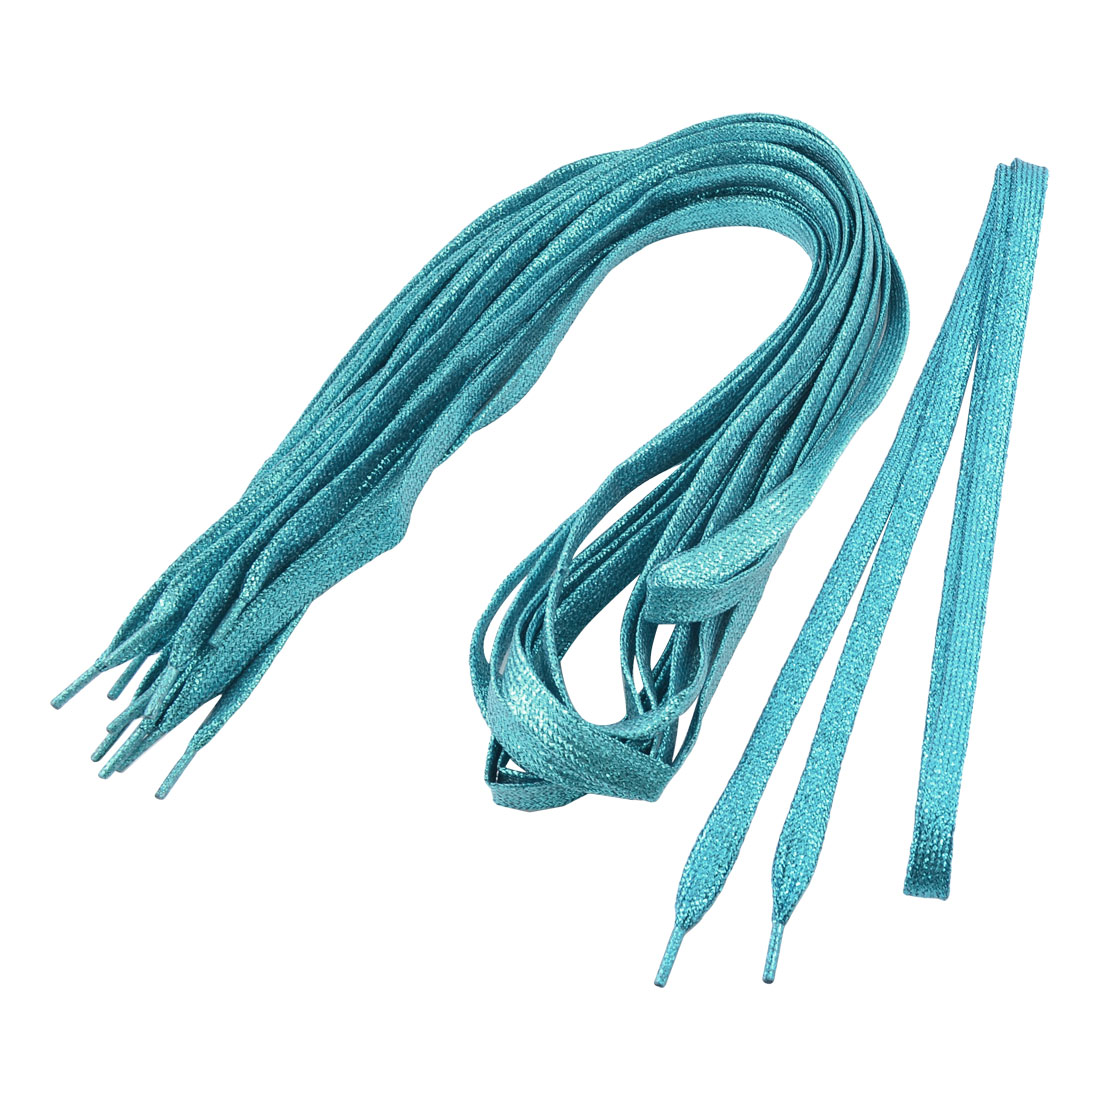 Unisex Glittery Textured Nylon Wide Flat Shoelaces Teal Blue 5 Pairs